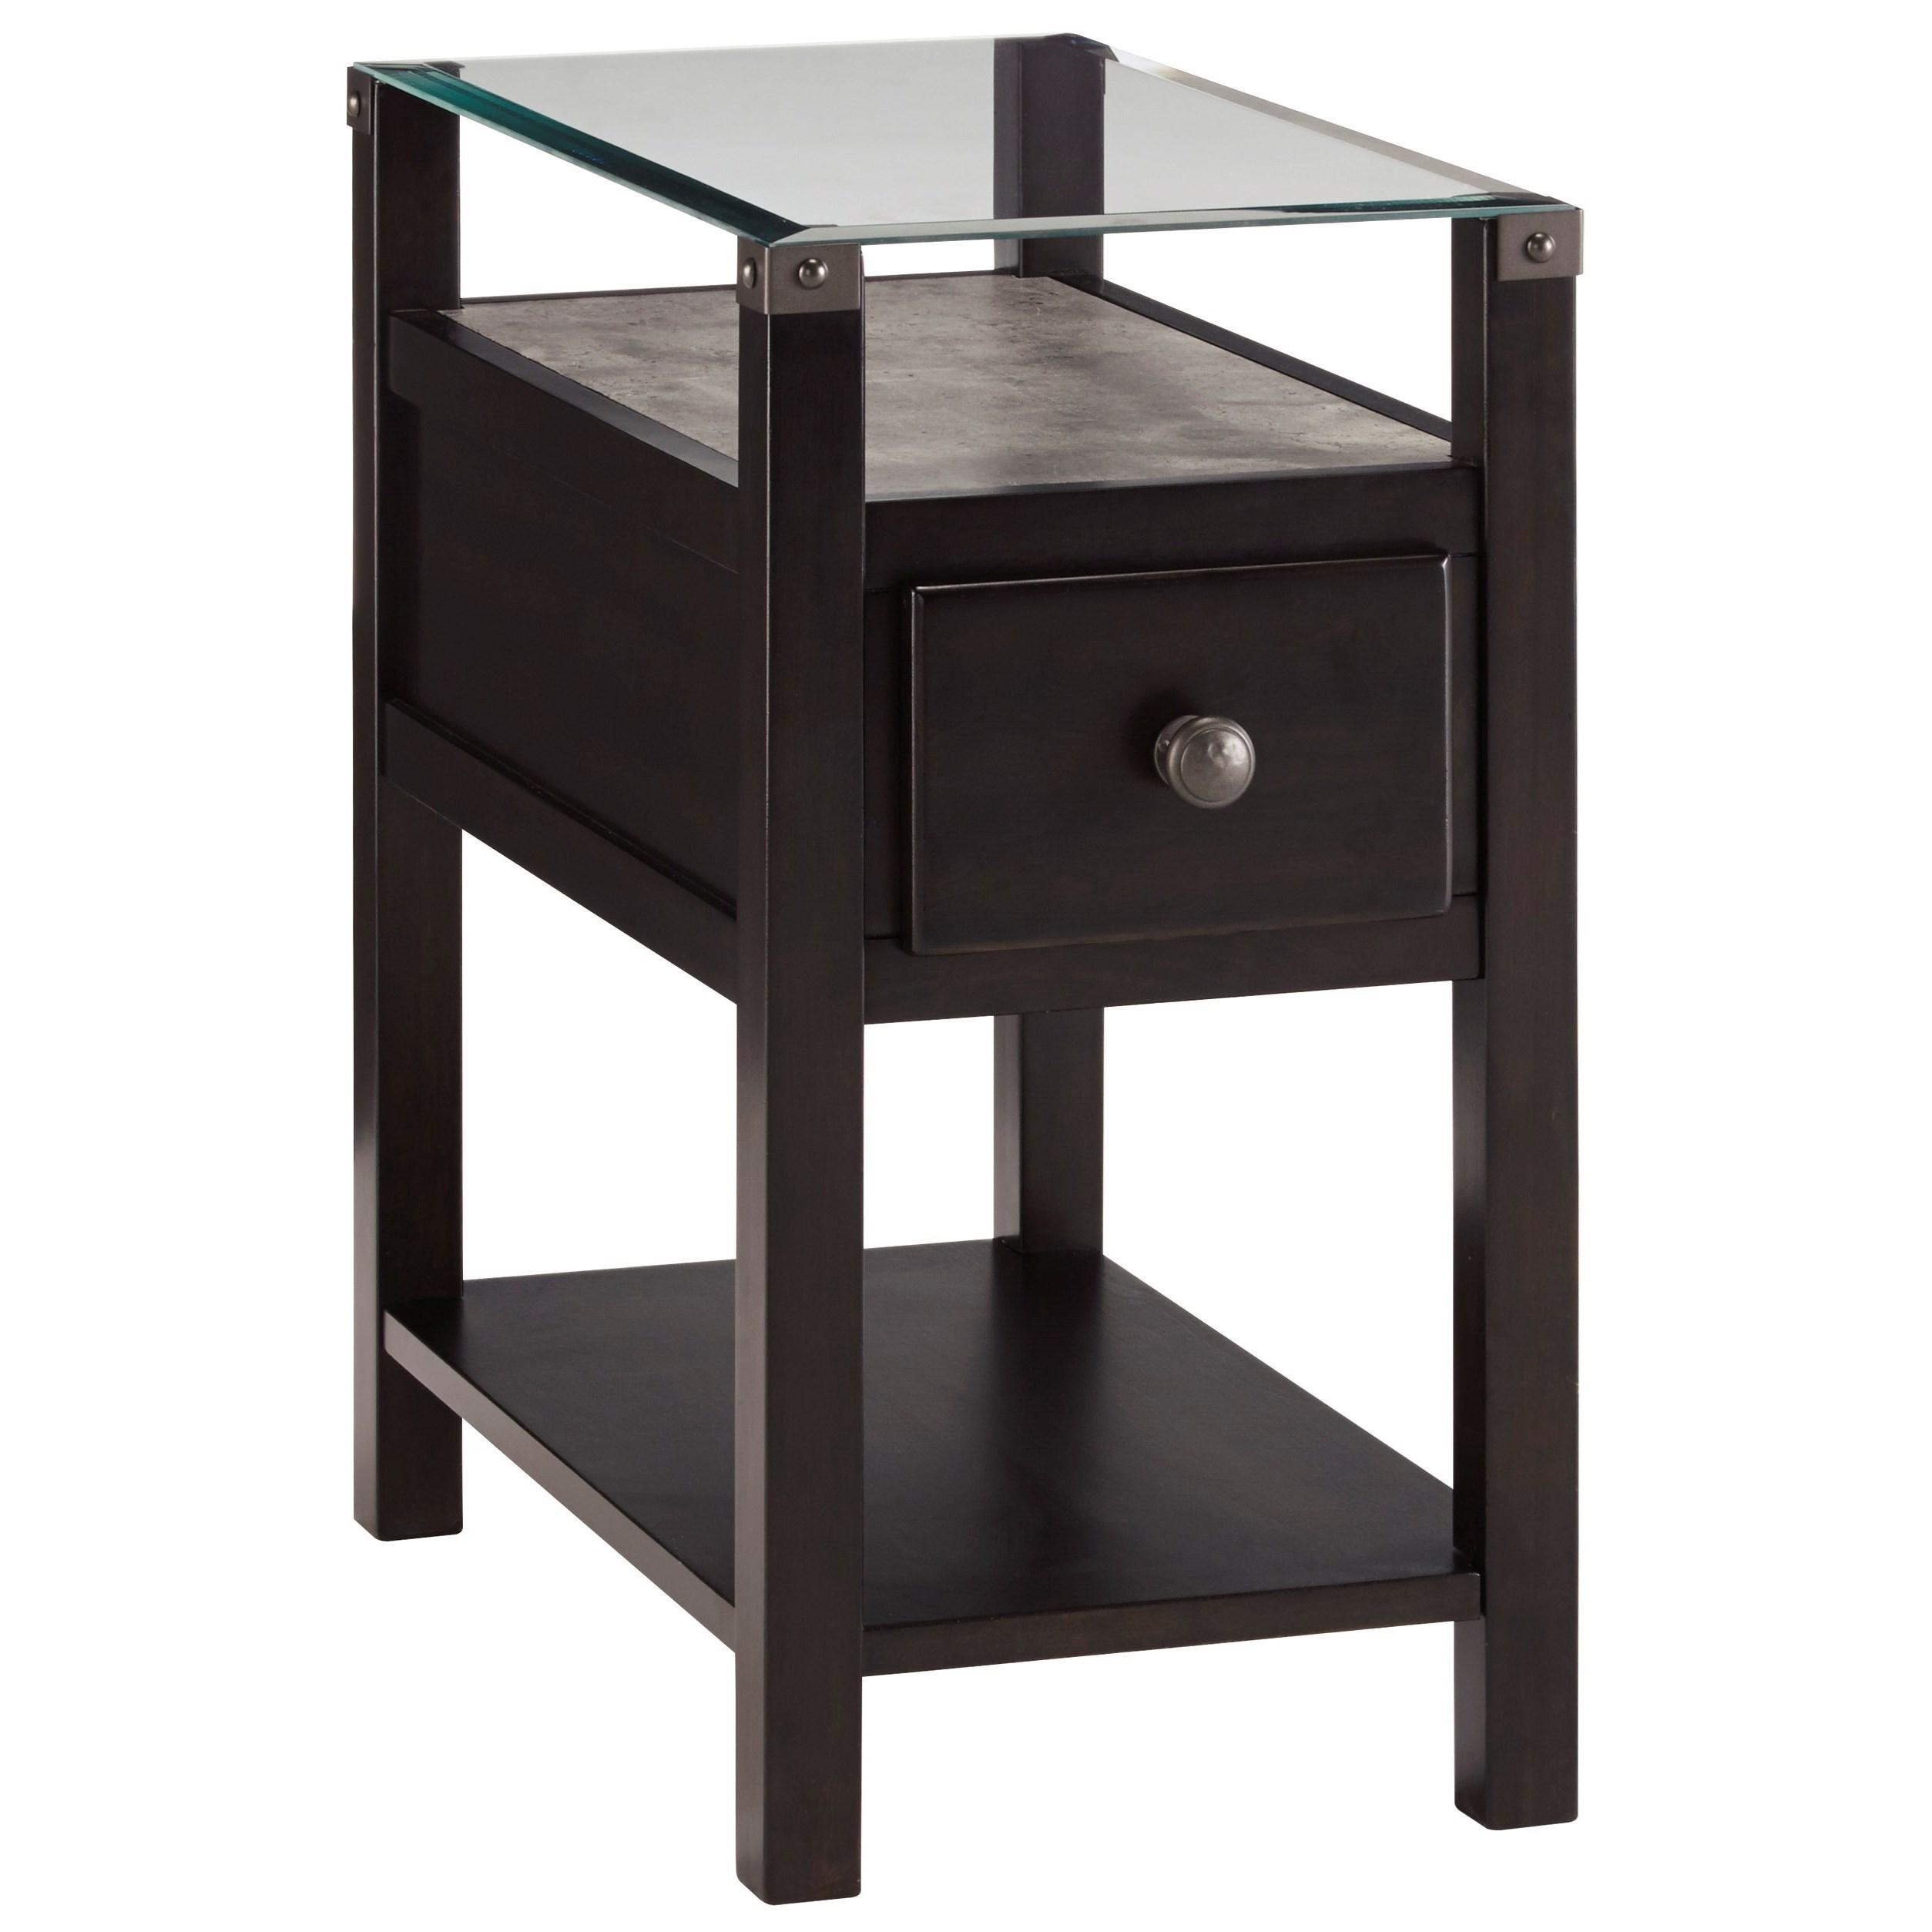 Black End Tables With Drawer Diana Almost Black Chair Side End Table With Glass Top And Faux Concrete Shelf By Trendz At Ruby Gordon Home